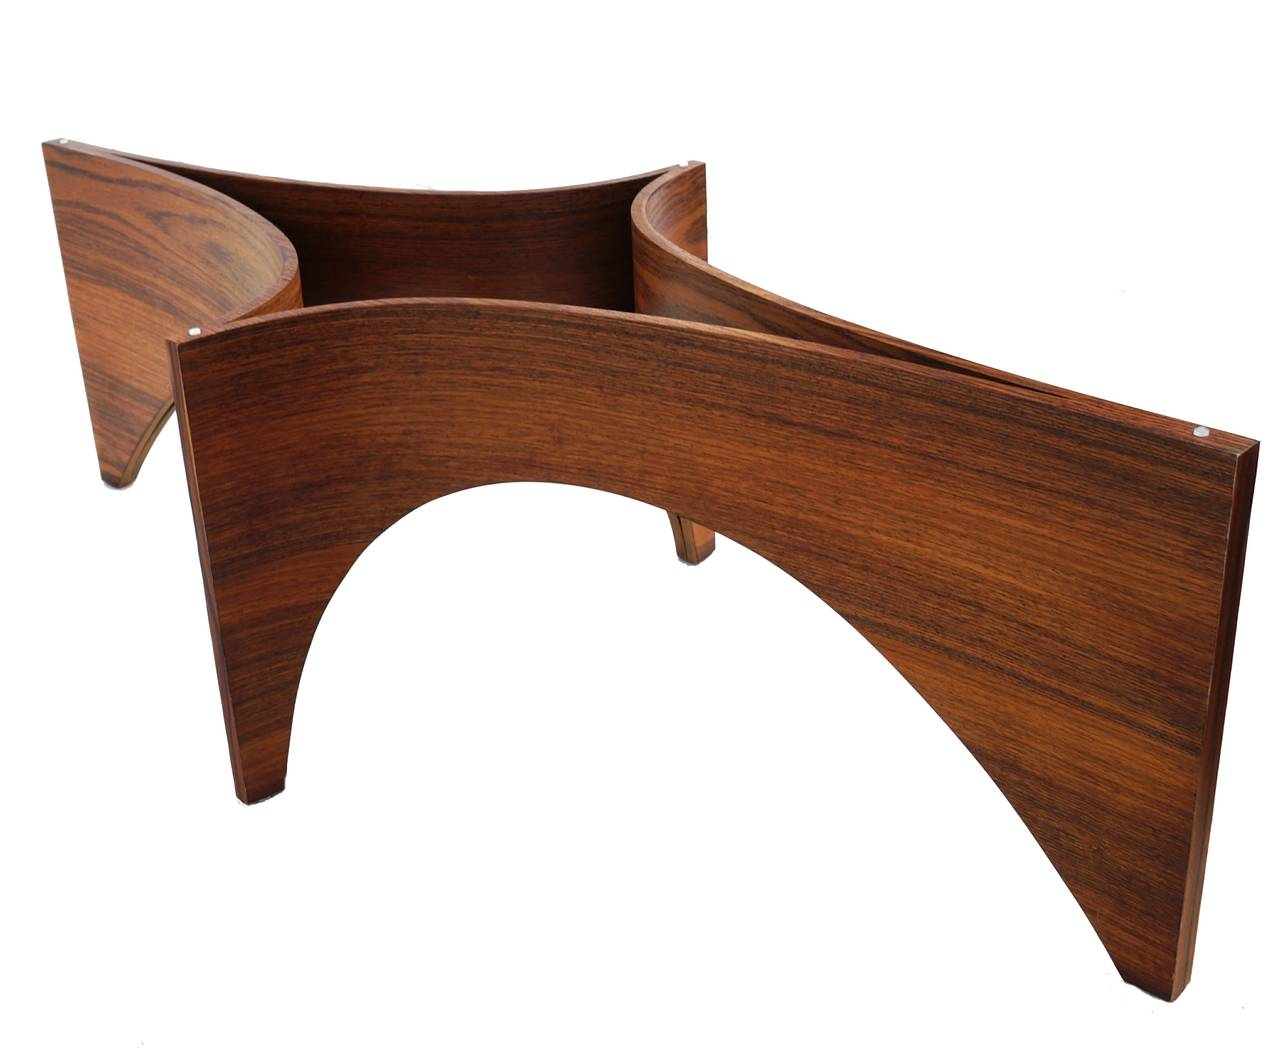 Mid Century Modern Sculptural Bentwood Glass Top Coffee Table For Sale 3